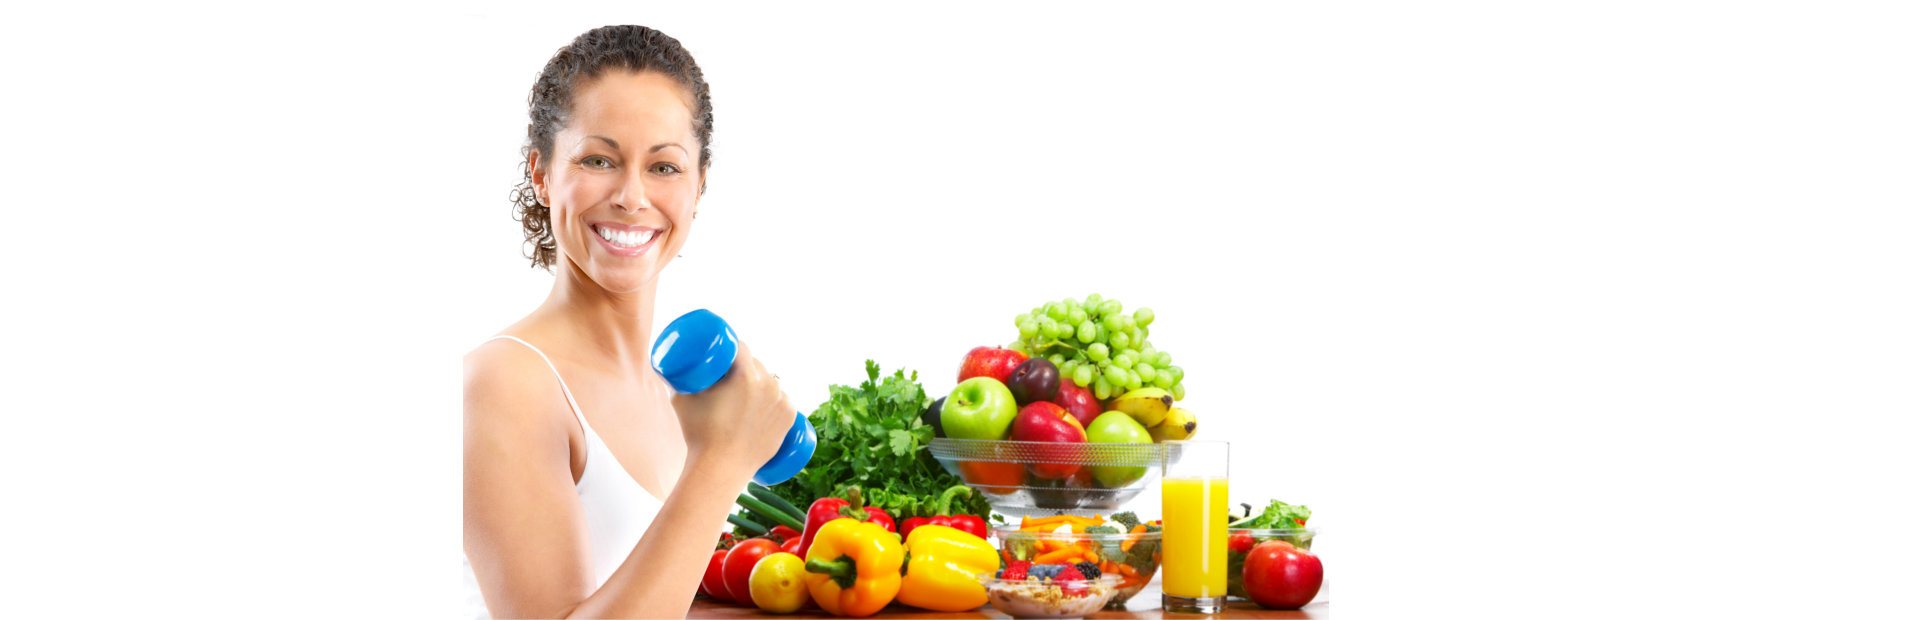 Woman with exercise and proper diet